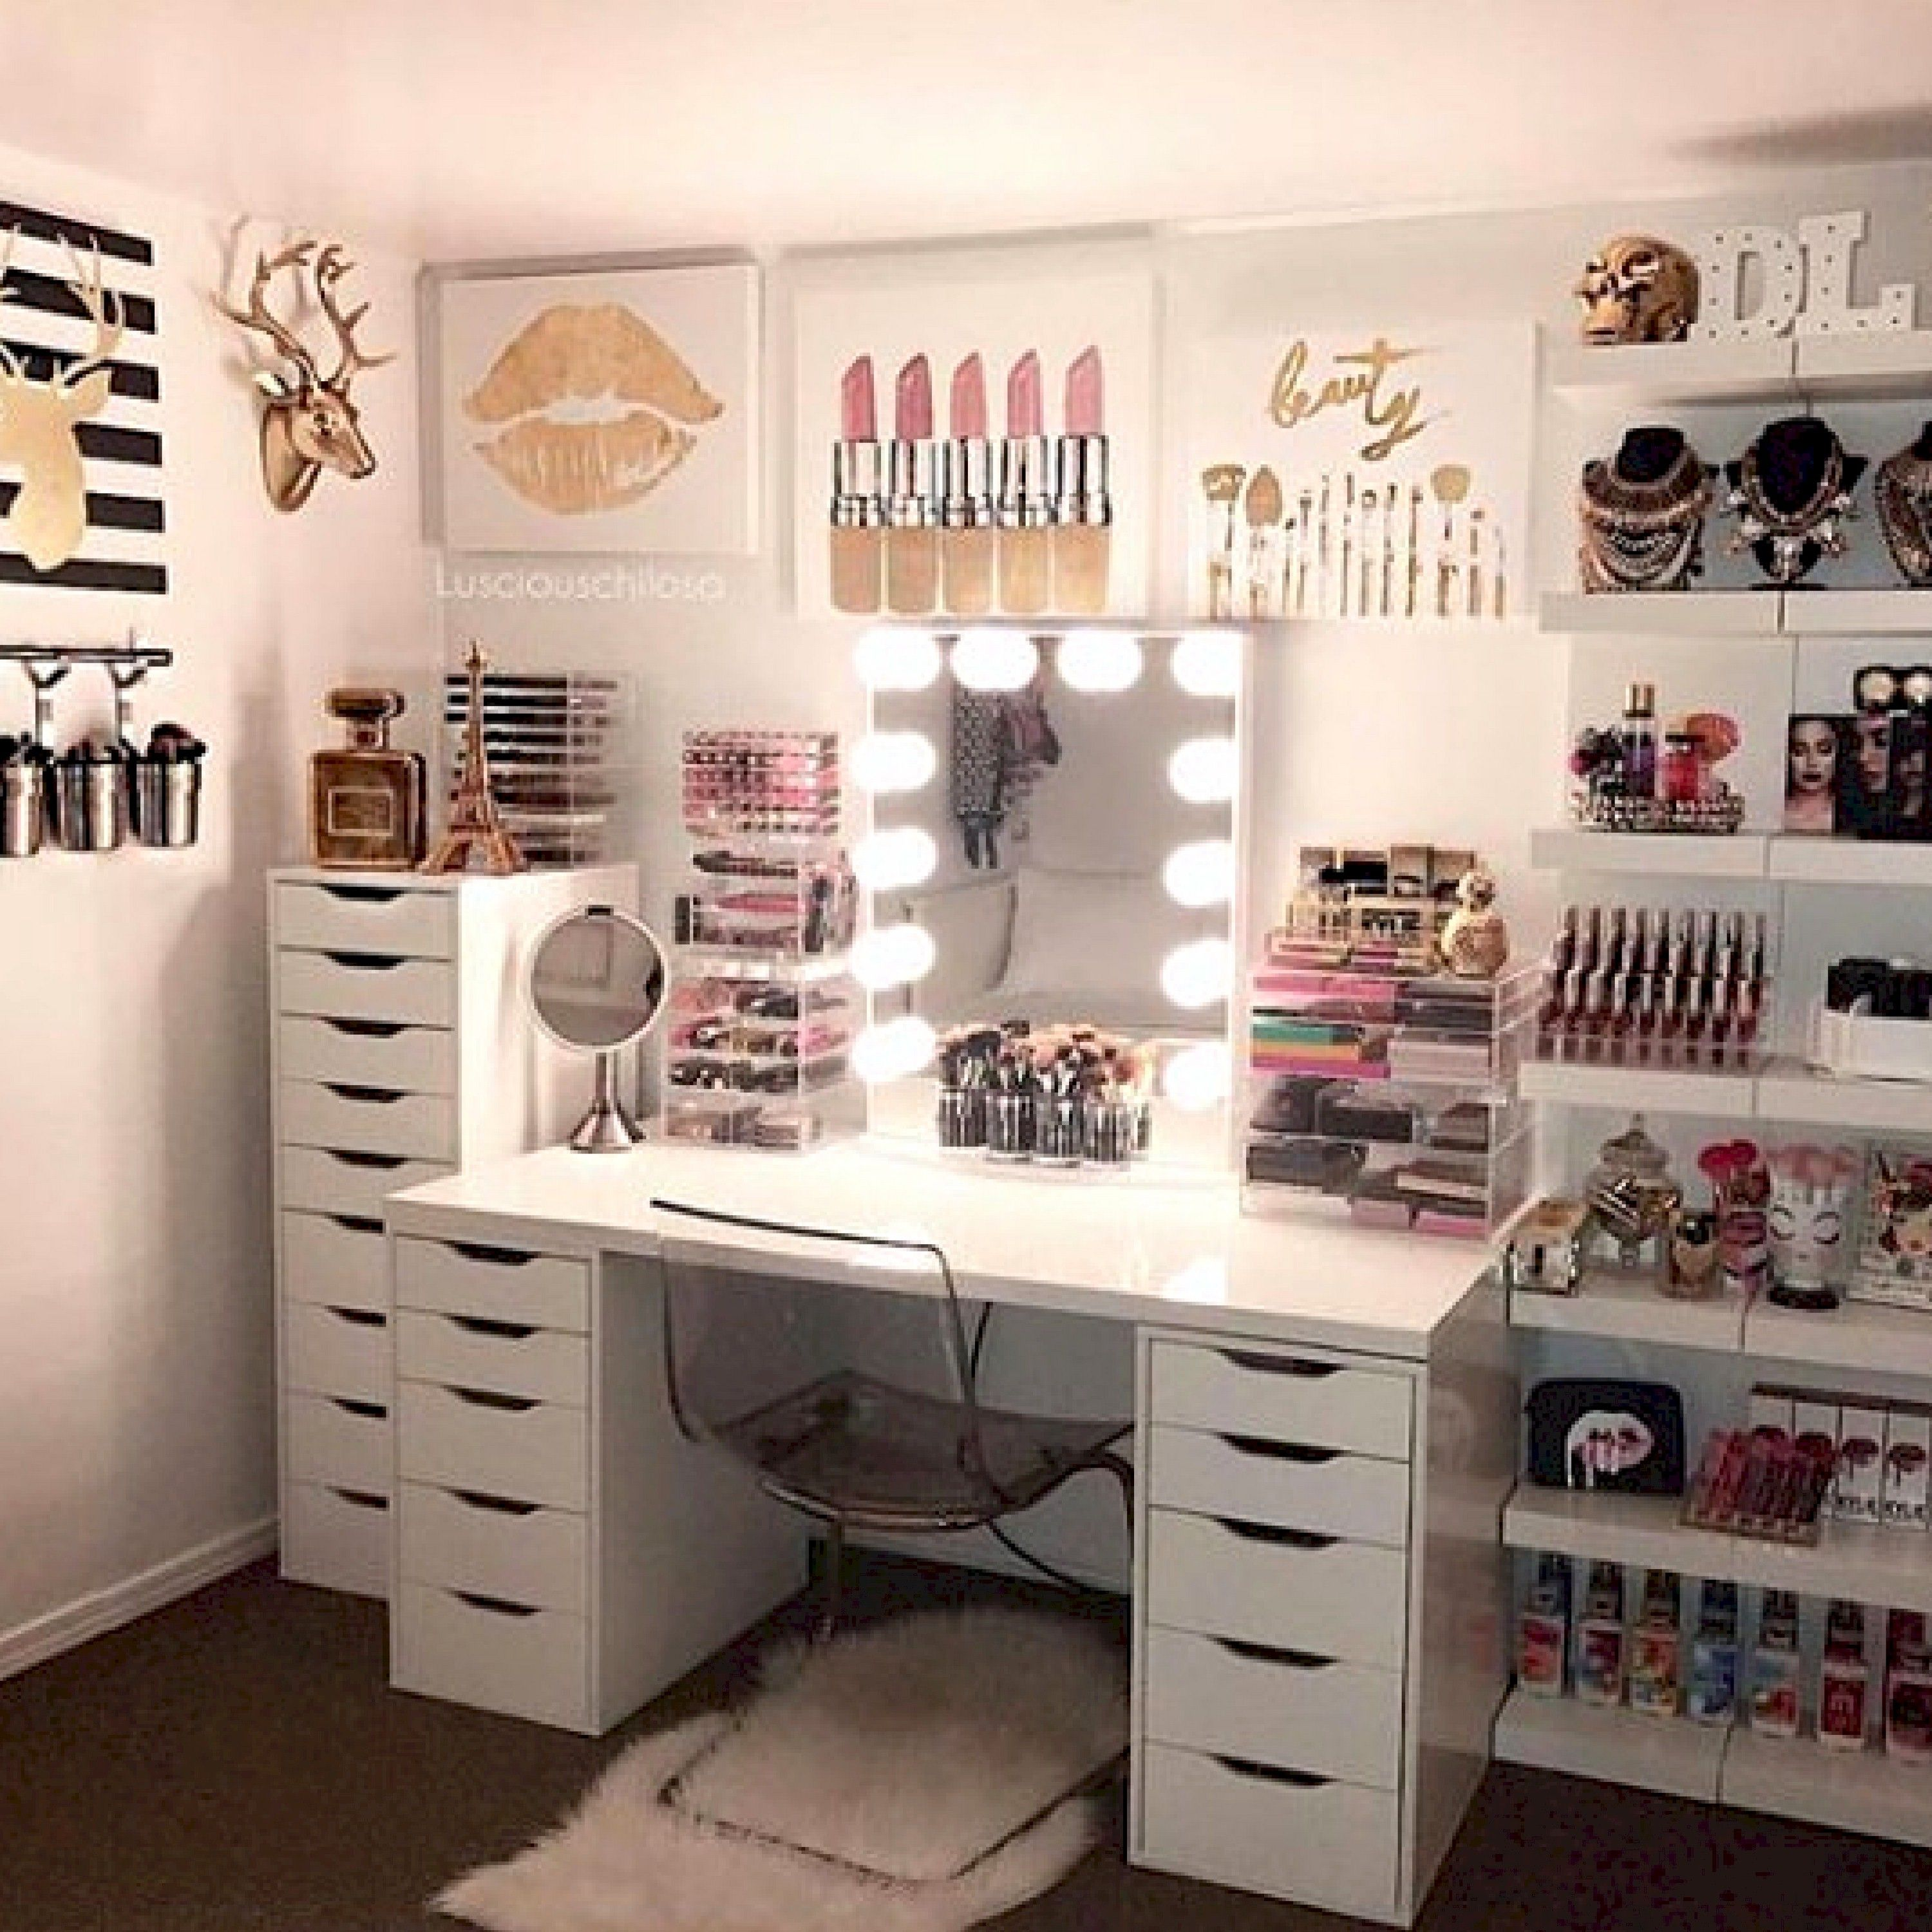 CLICK TO DOWNLOAD Your Beauty Room & Makeup Collection Checklist